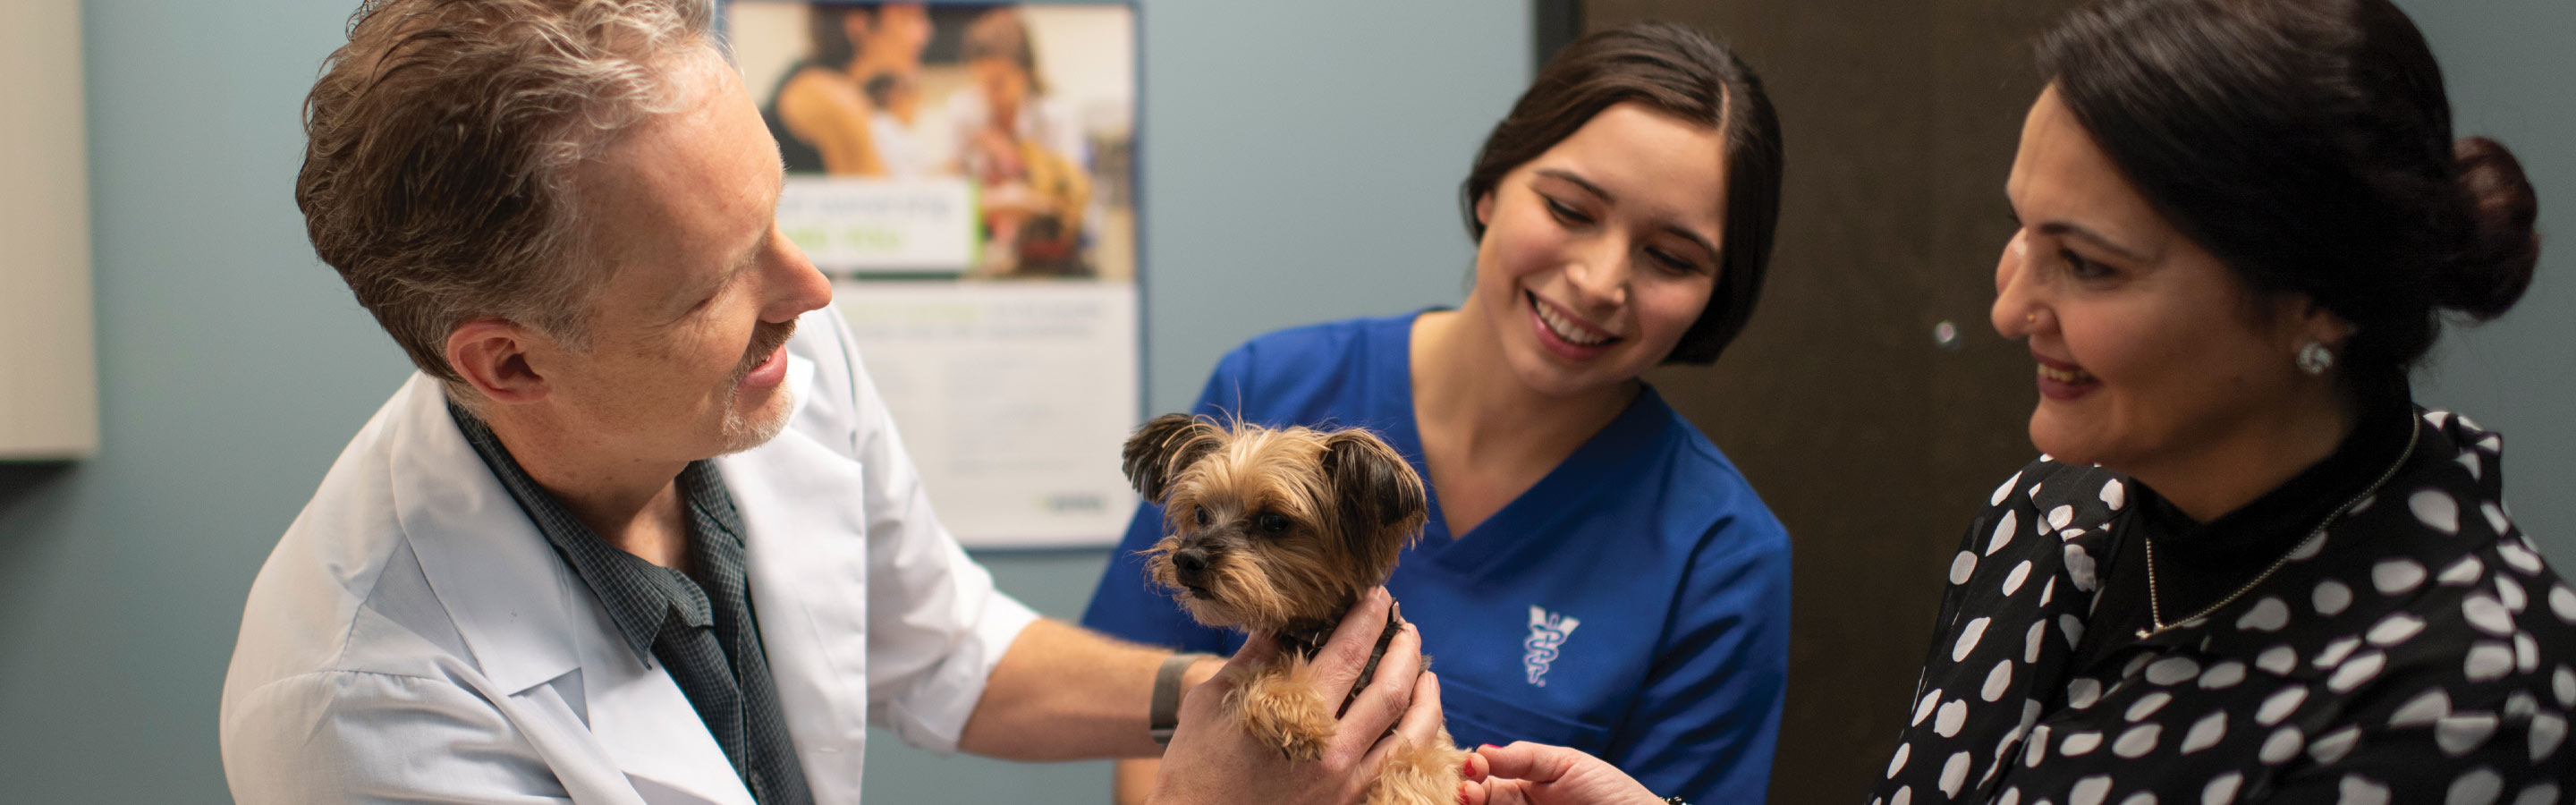 A male veterinarian and female veterinary technician examine a small dog with a client in a clinic setting.